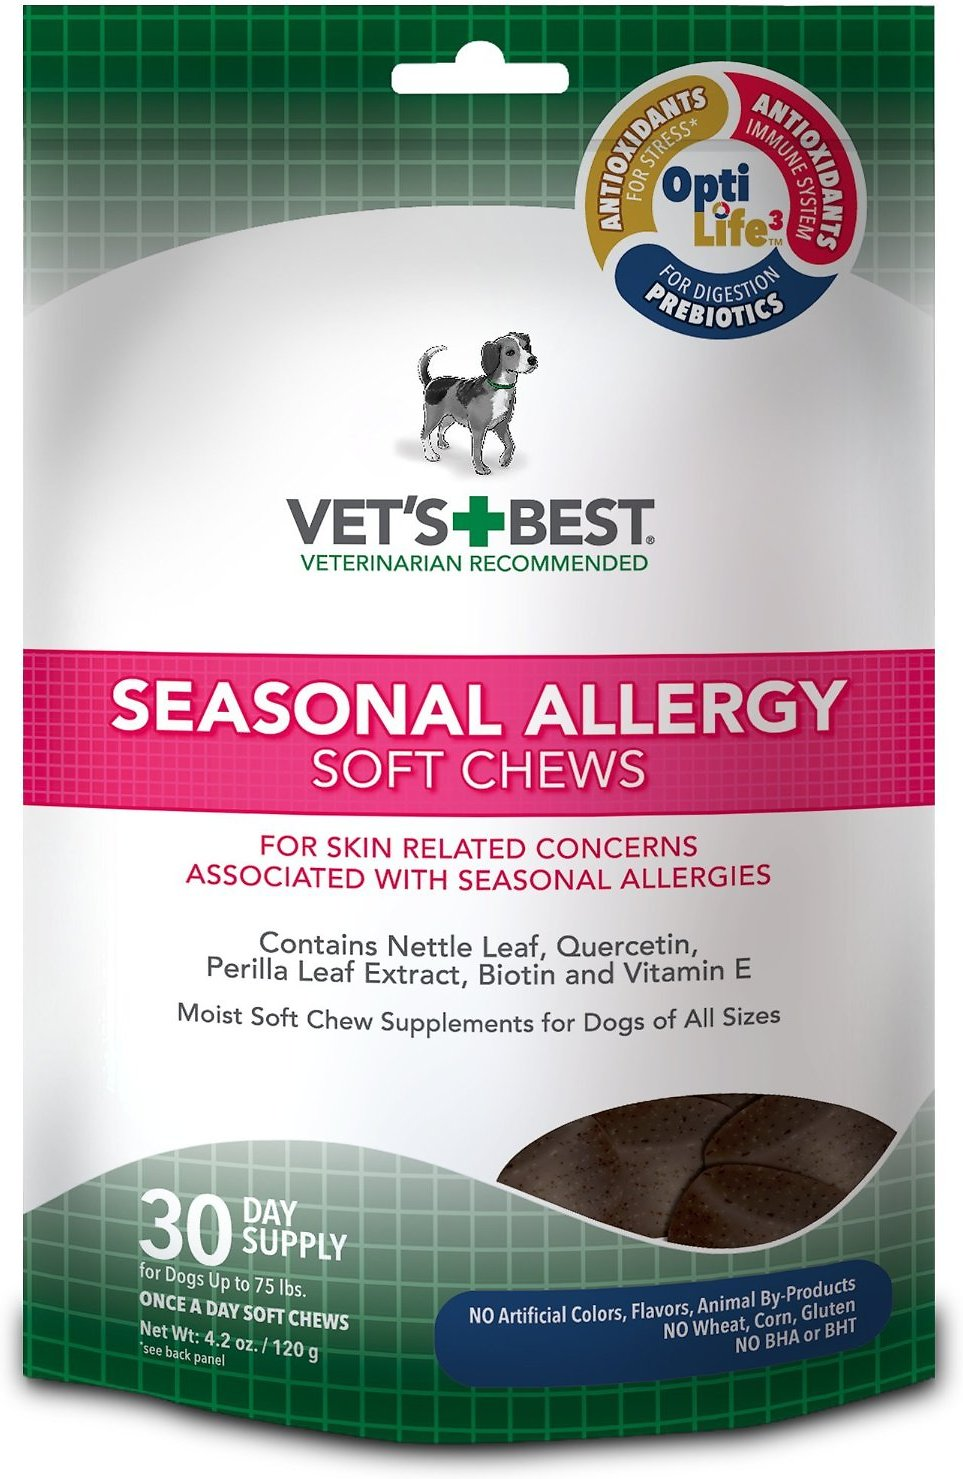 Vet's Best Seasonal Allergy Soft Chews Dog Supplement, 30 count